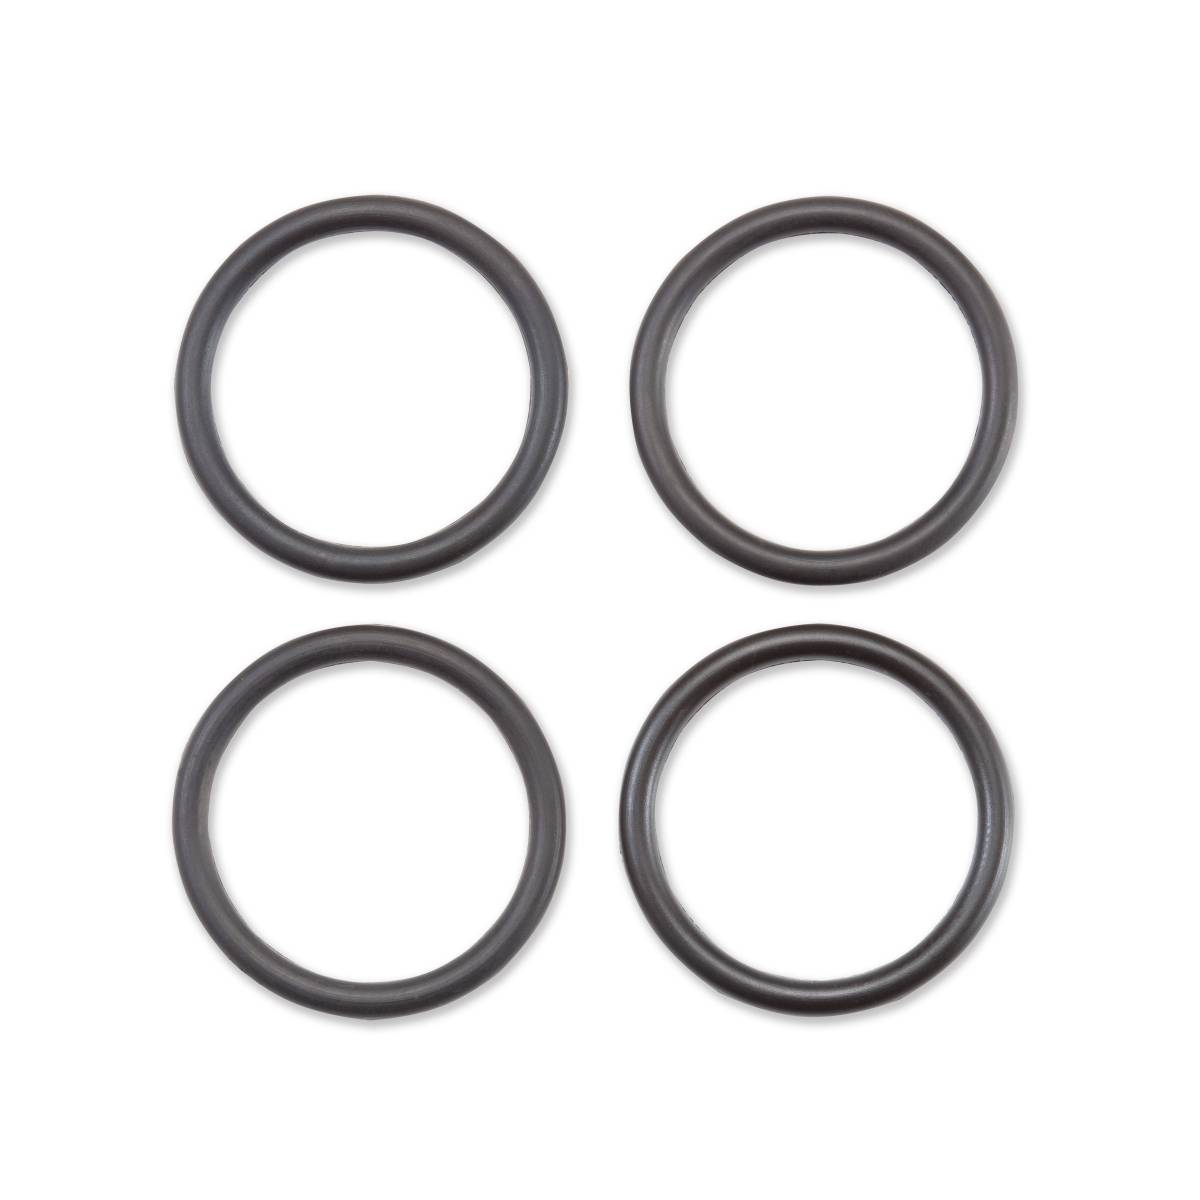 Alliant Power Ap High Pressure Oil Rail Seal Kit